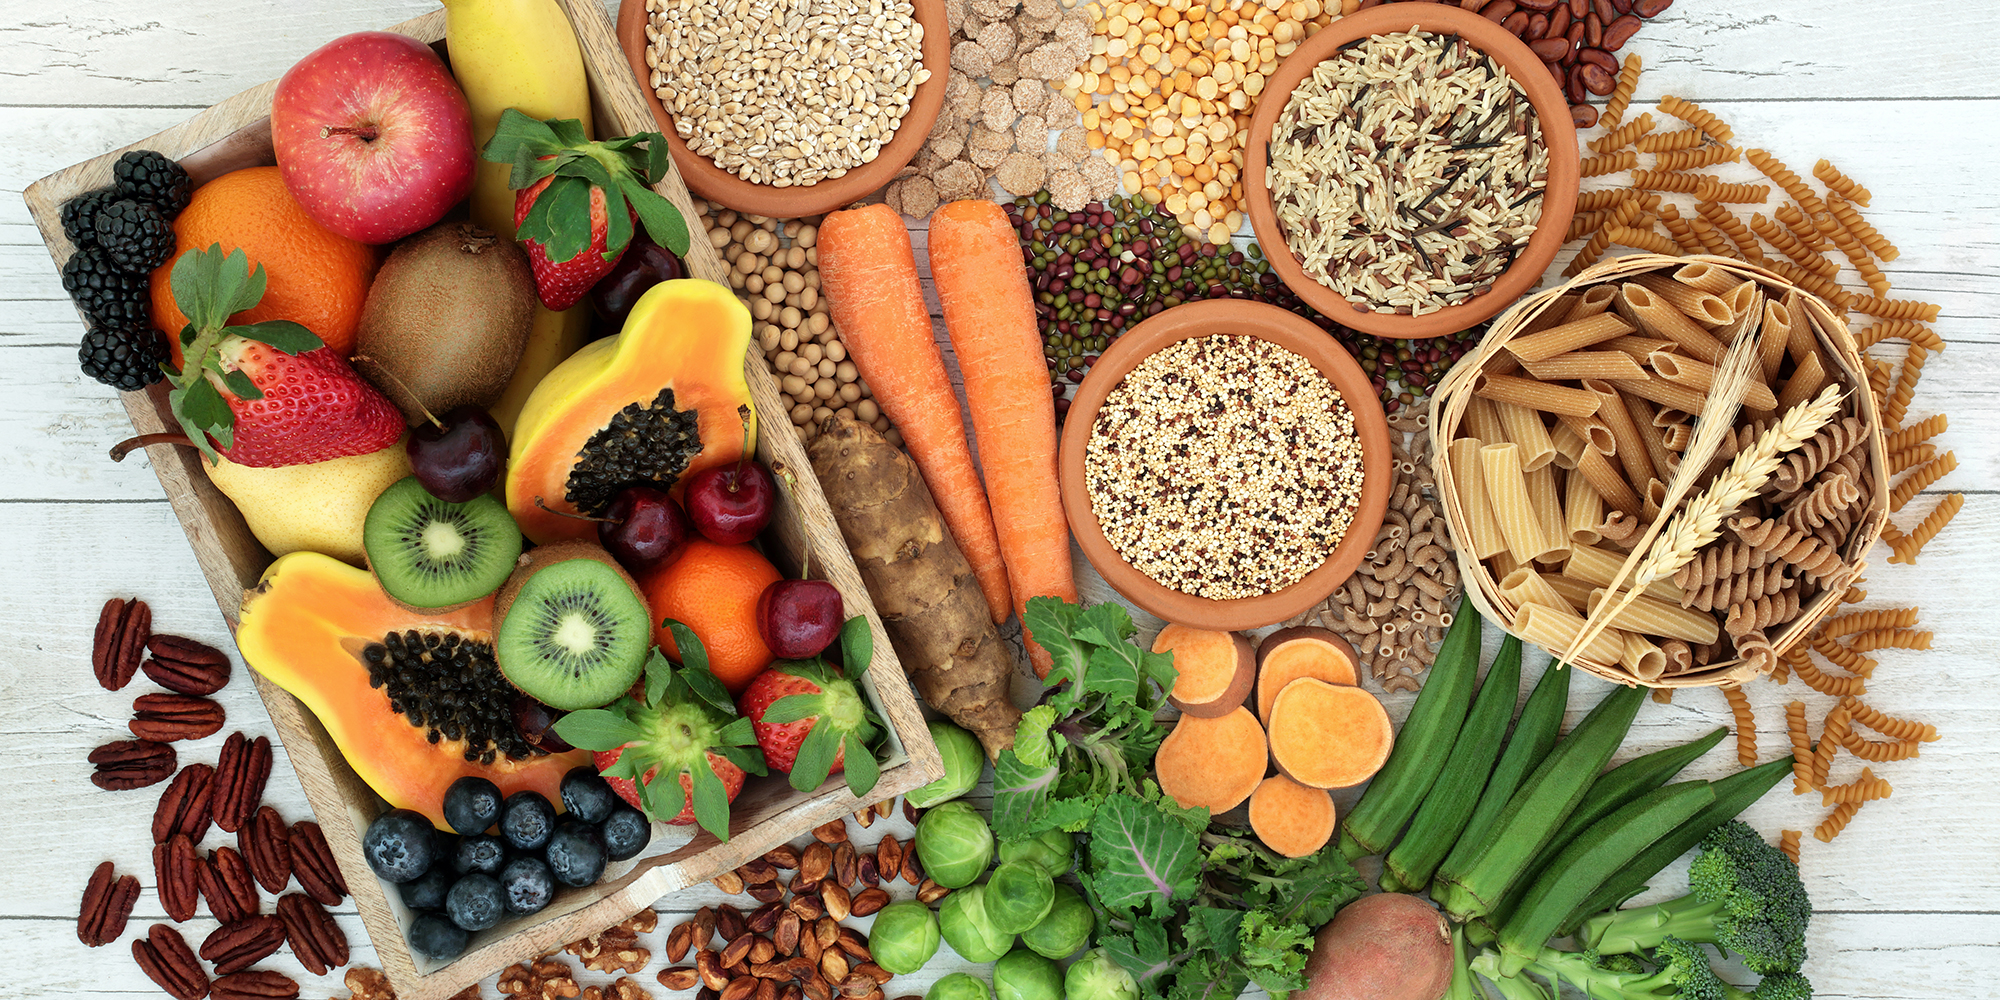 high fiber foods diet plan | fruits vegetables grains